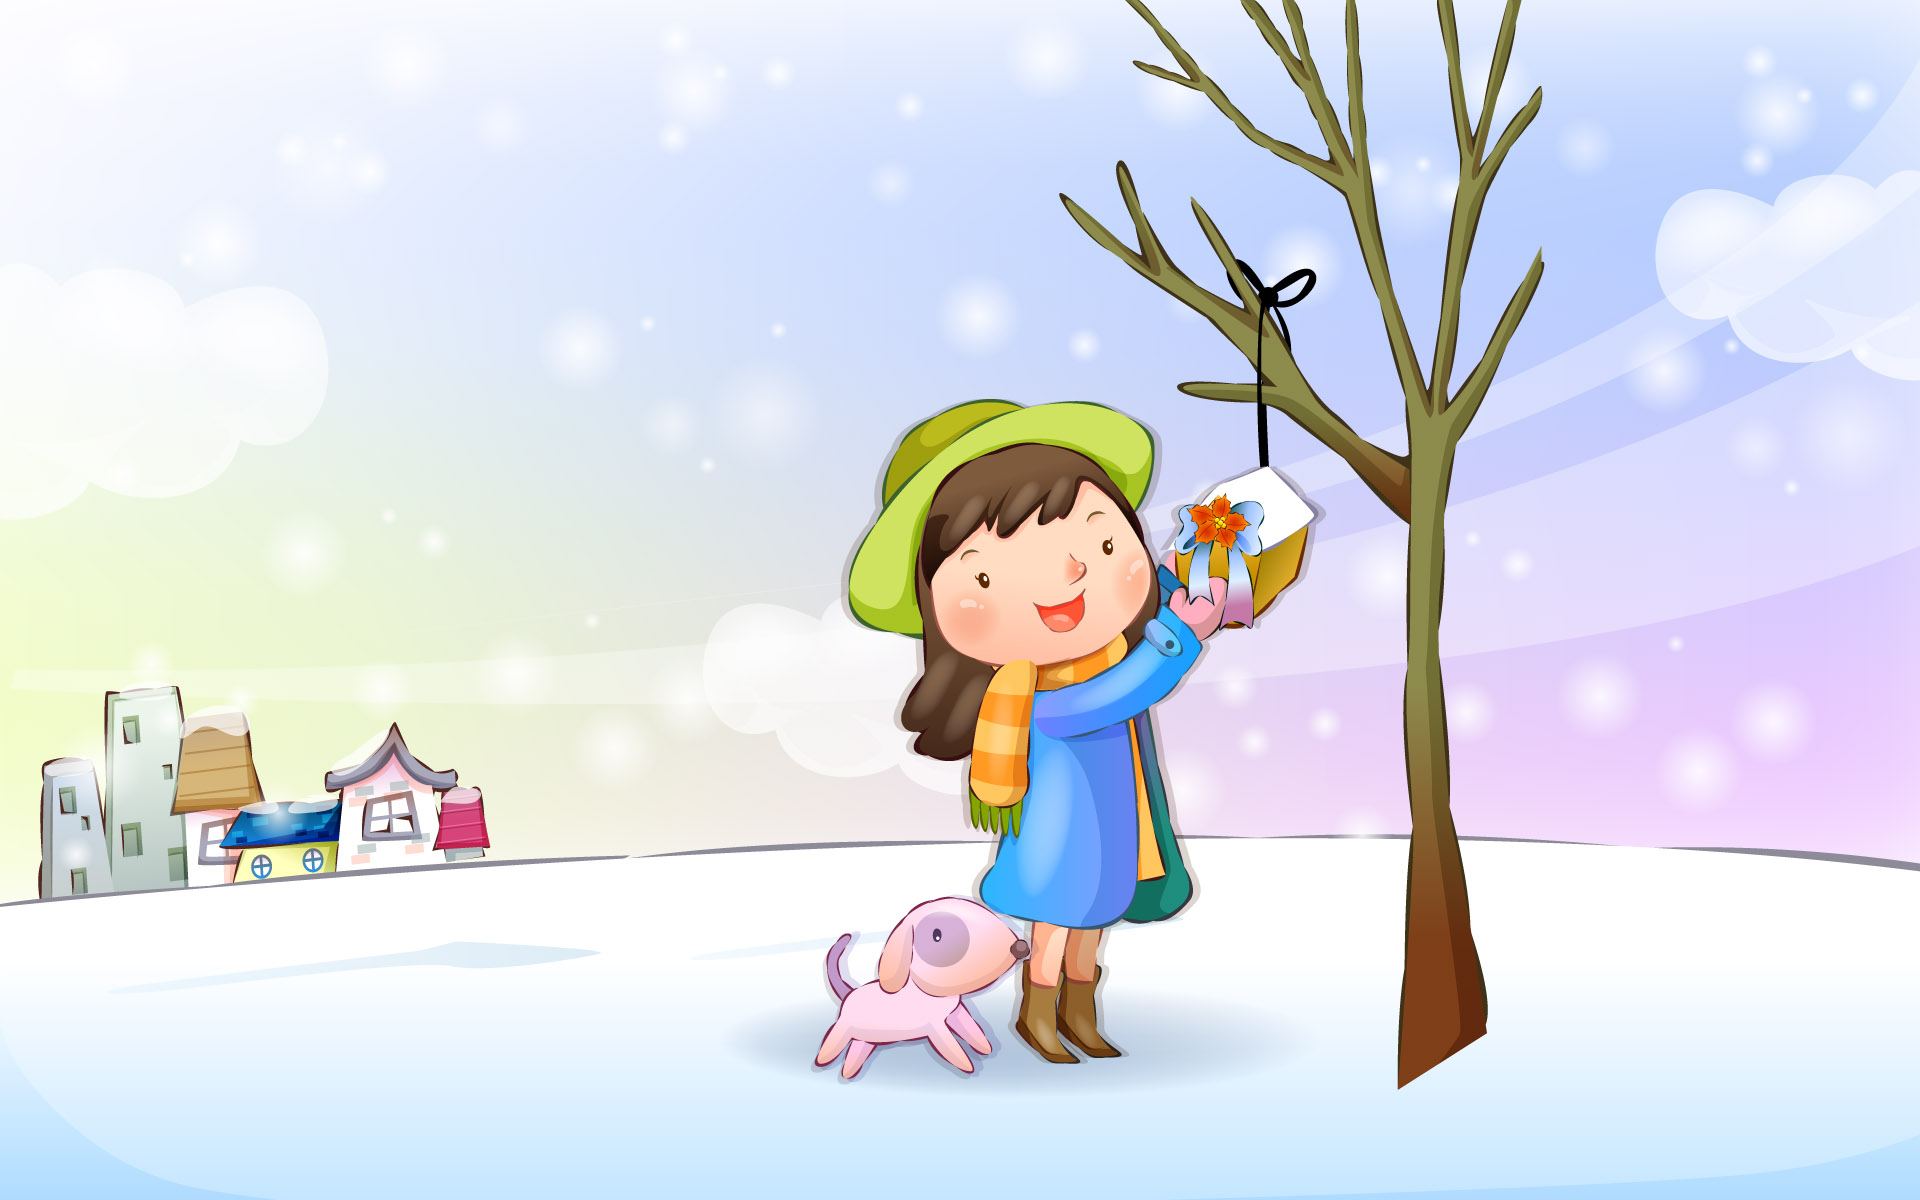 Happy childhood Christmas illustration articles 13637